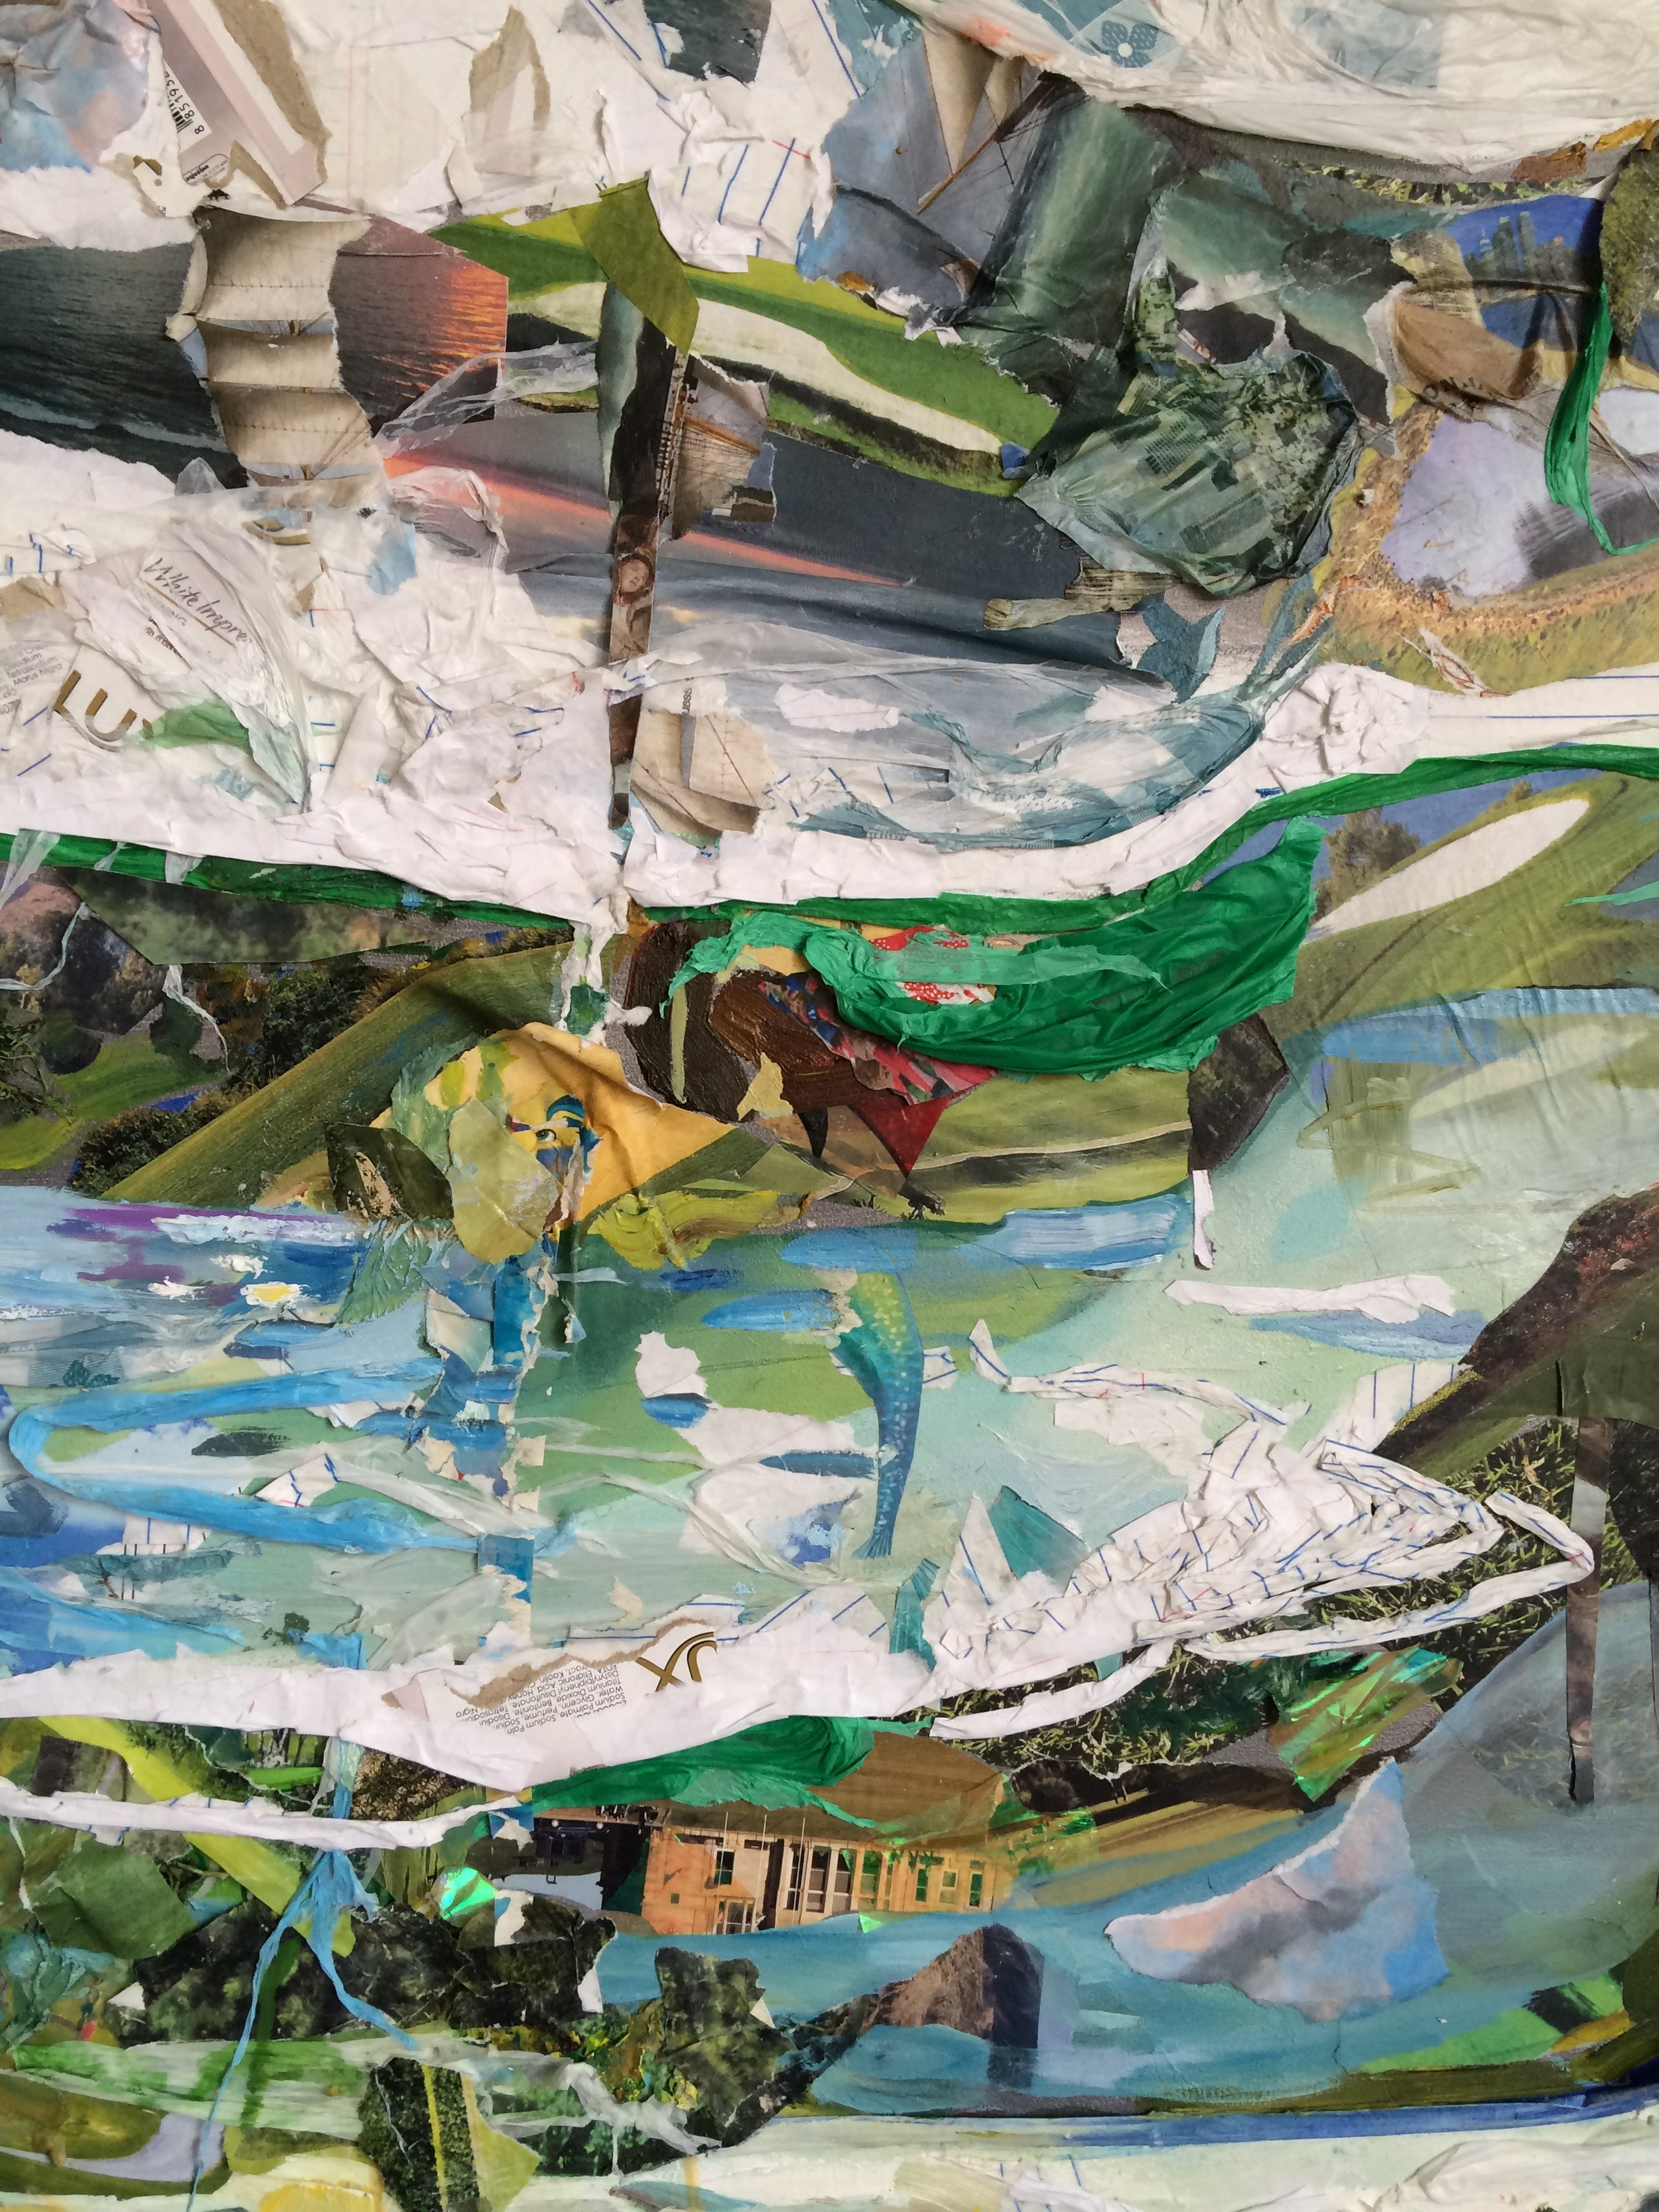 Tiers  (detail) , 2015, oil, notebook paper, golf course calendars, skin whitening soap boxes, photos, and plastic on board, 48 x 60 inches